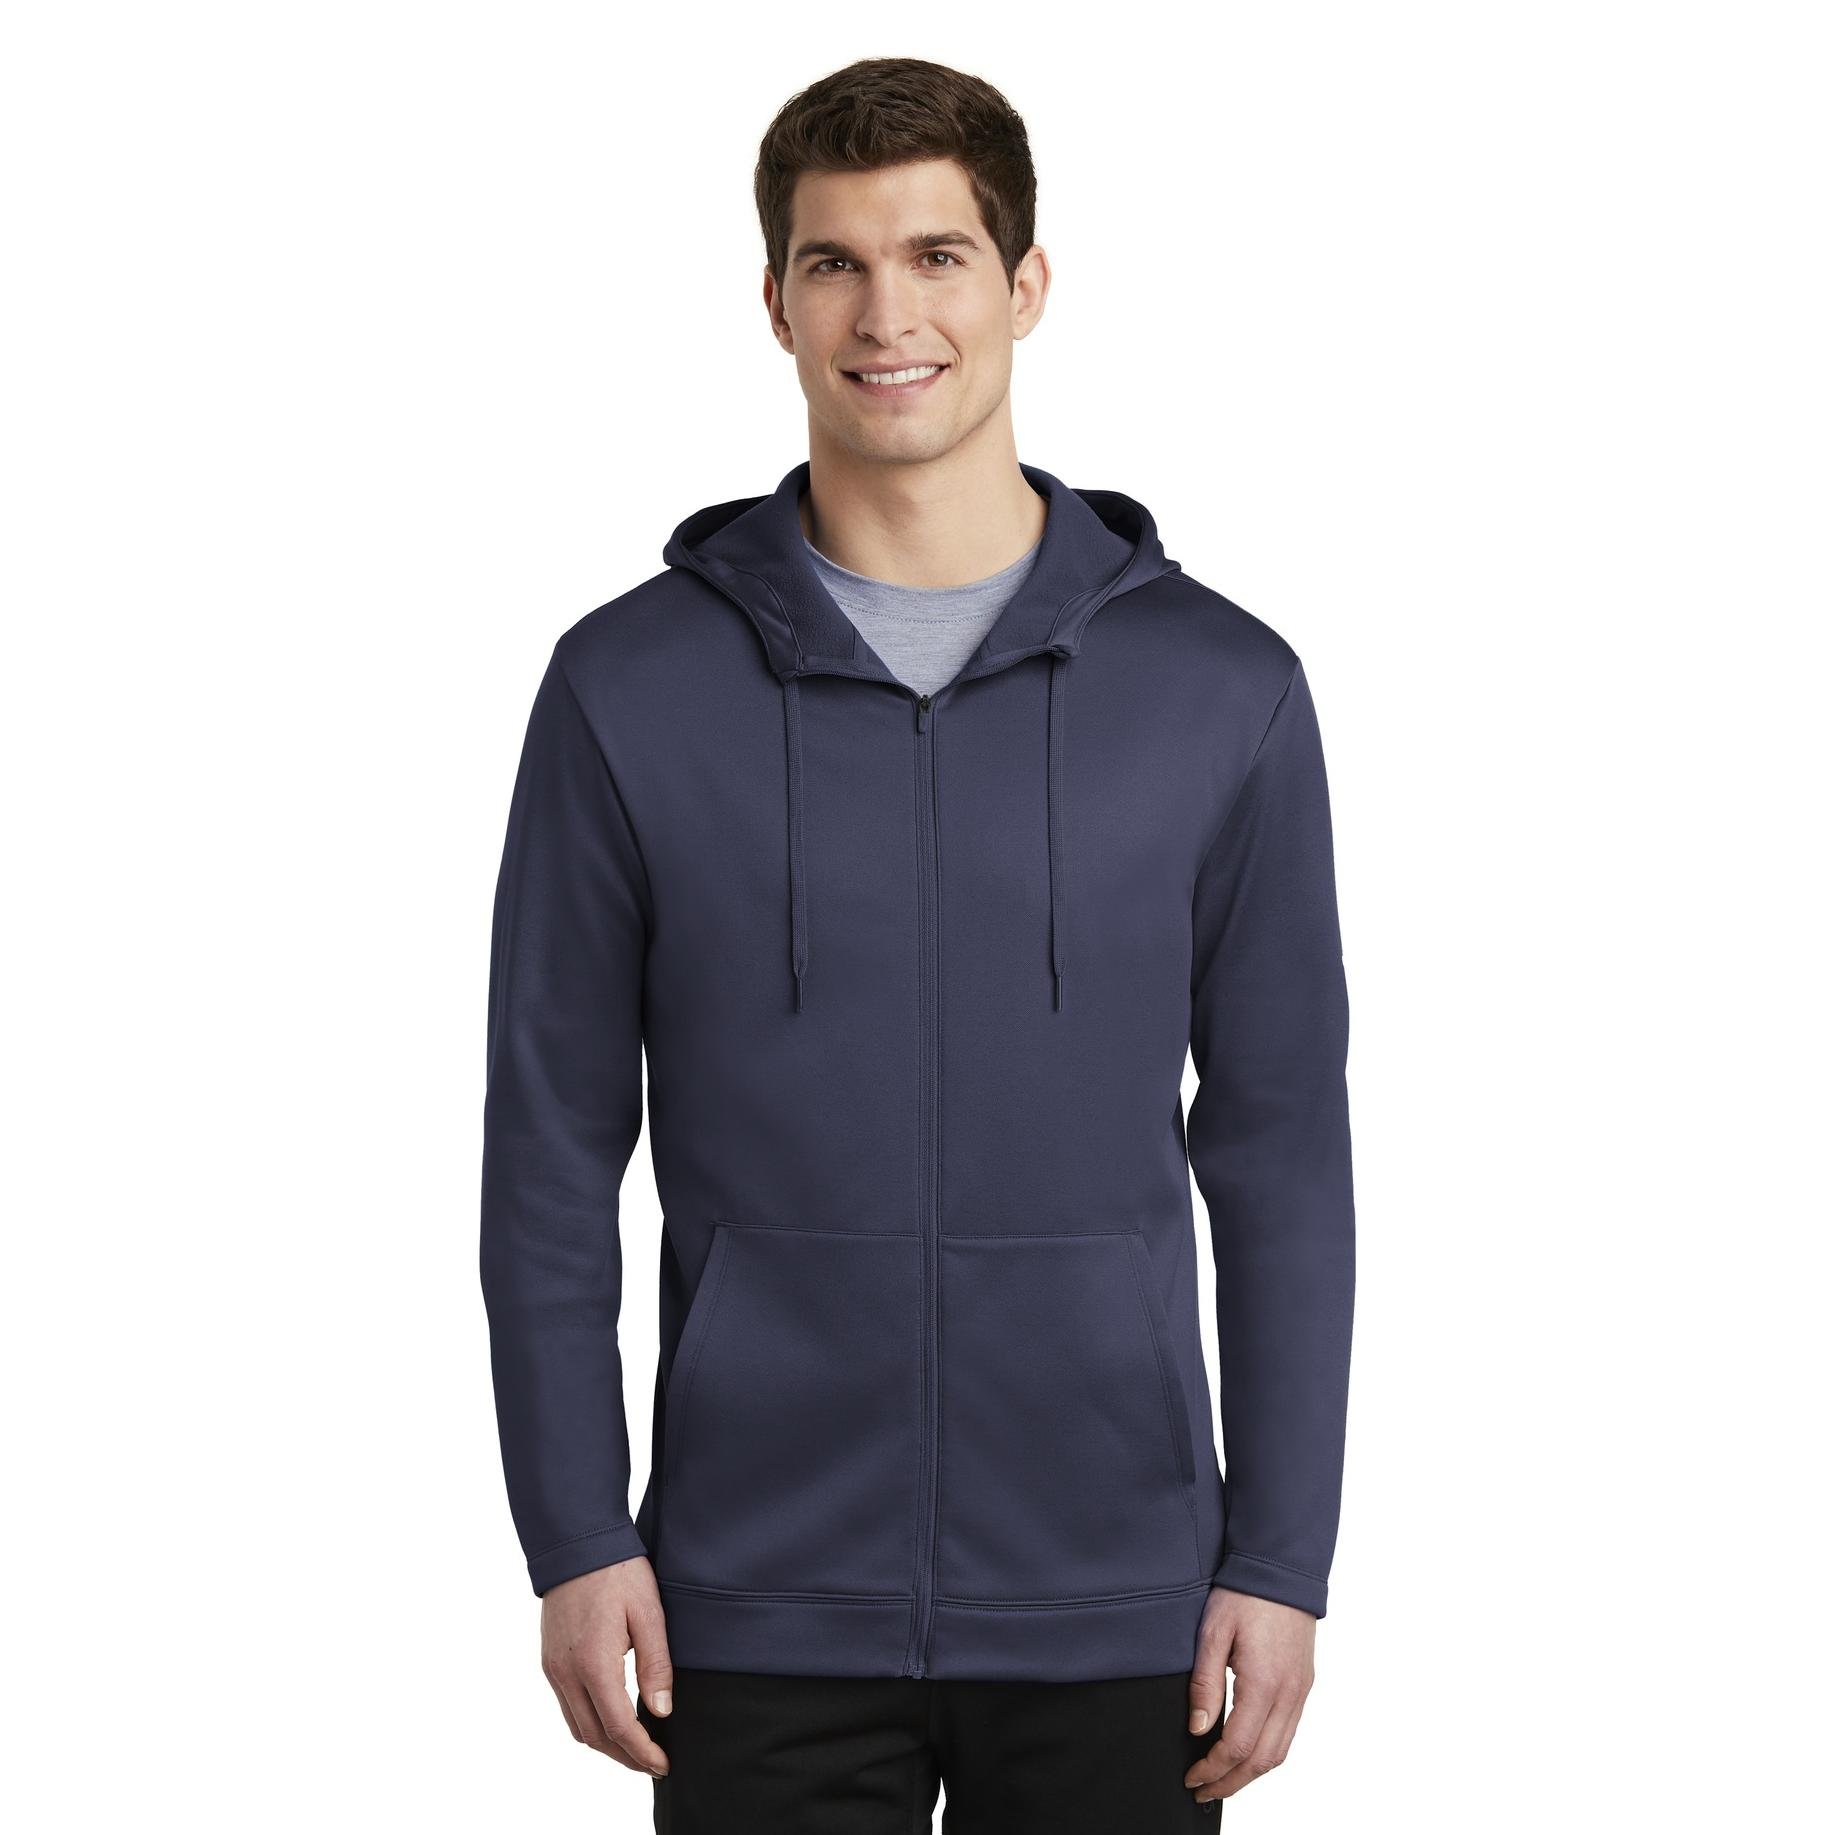 eb8d83eb0c9f Nike NKAH6259 Therma-FIT Full-Zip Fleece Hoodie - Midnight Navy ...